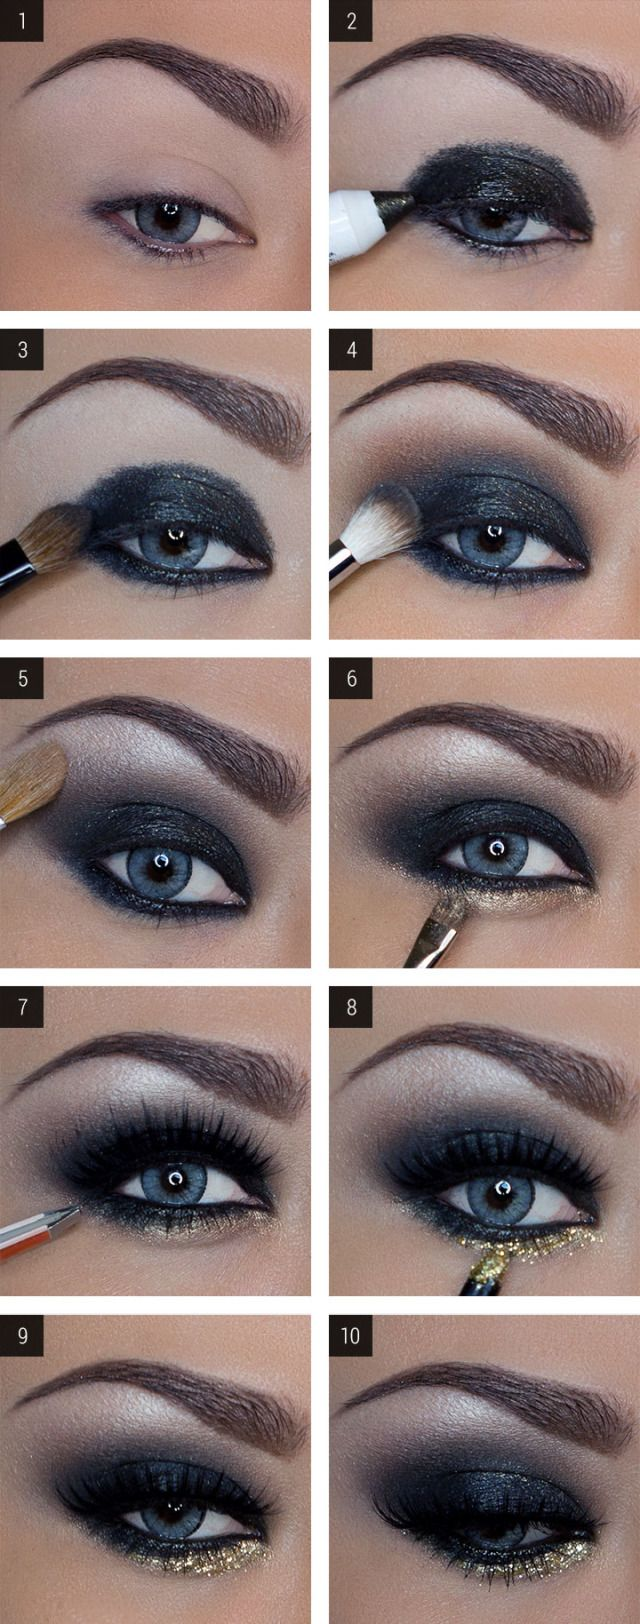 How to Do a Shimmery Smoky Eye Like a Pro